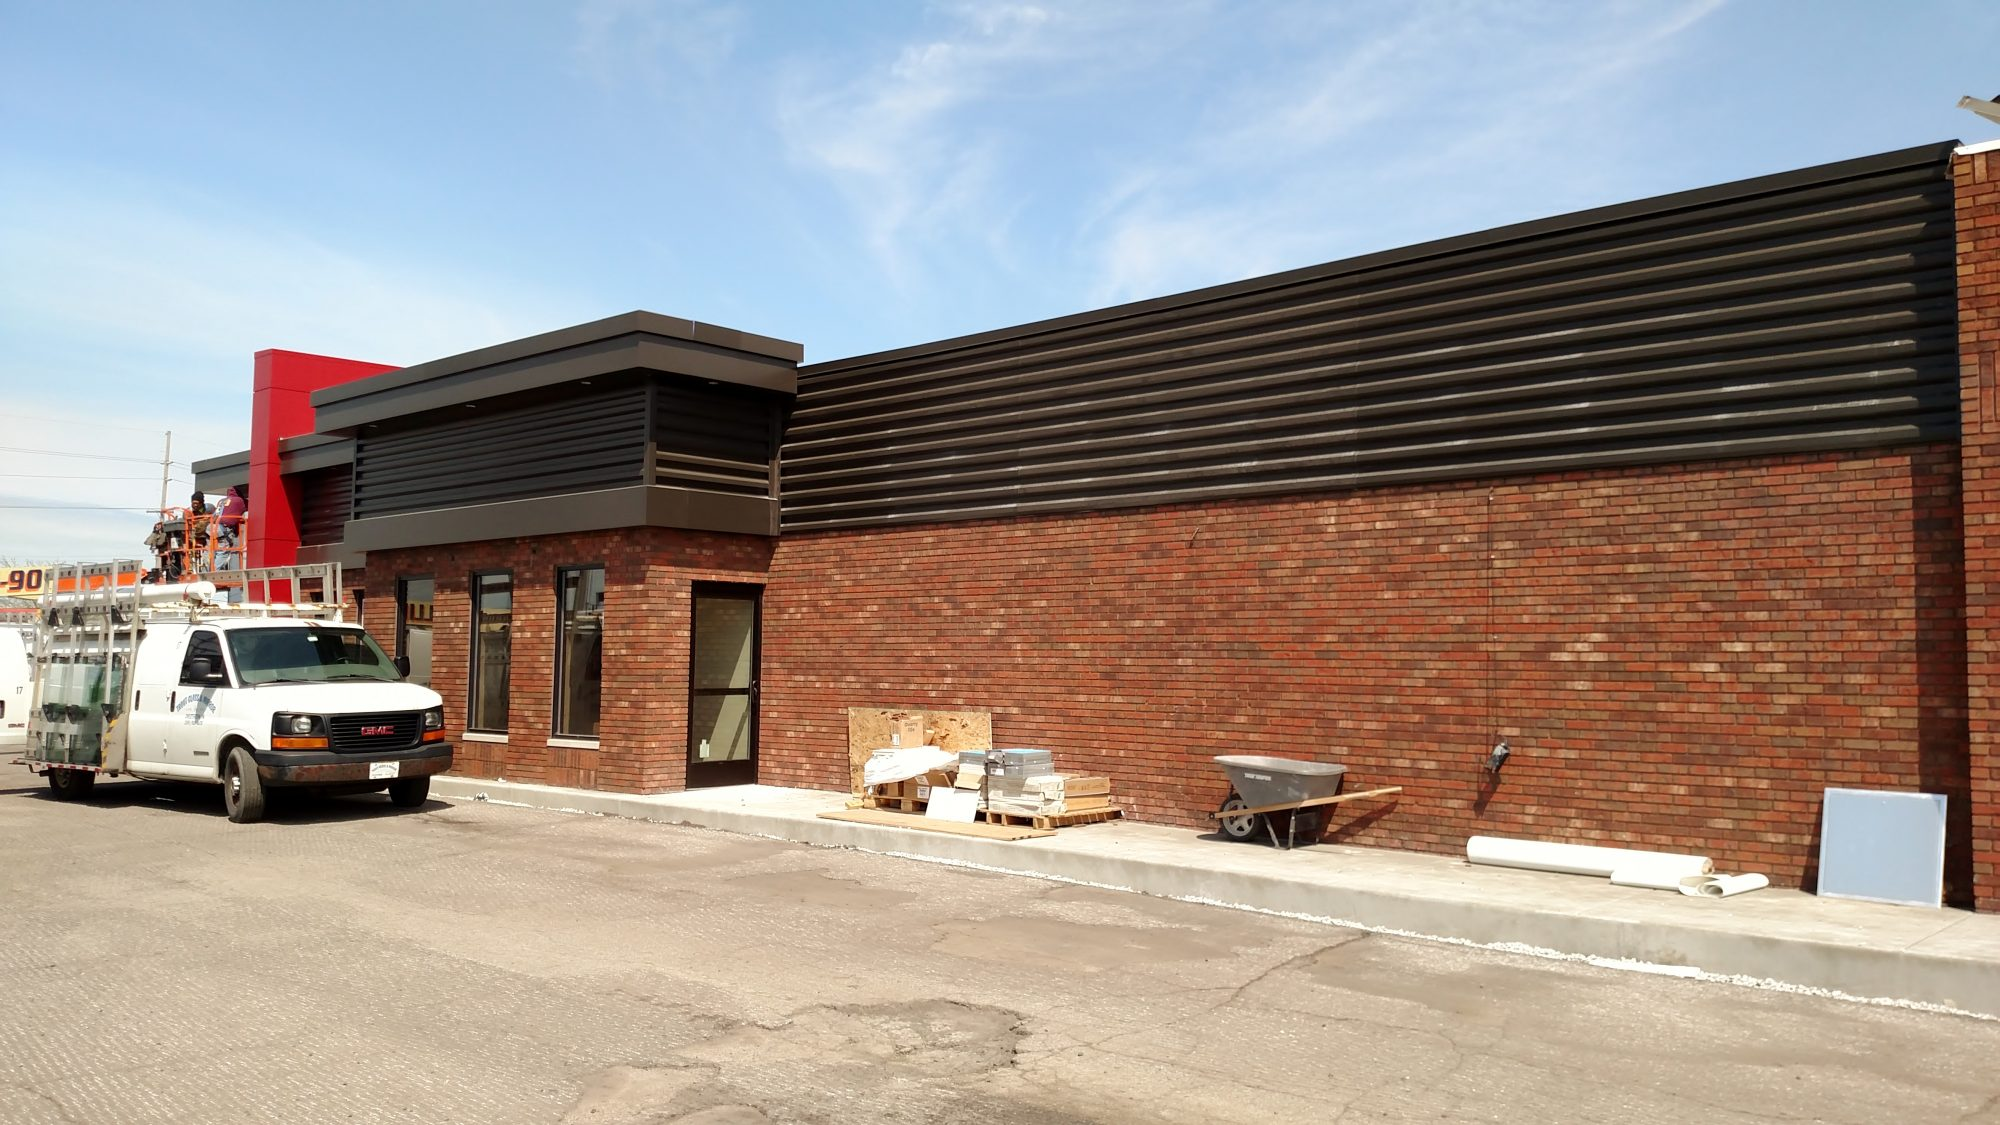 Wendy S Renovation Merrillville In Ccs Image Group